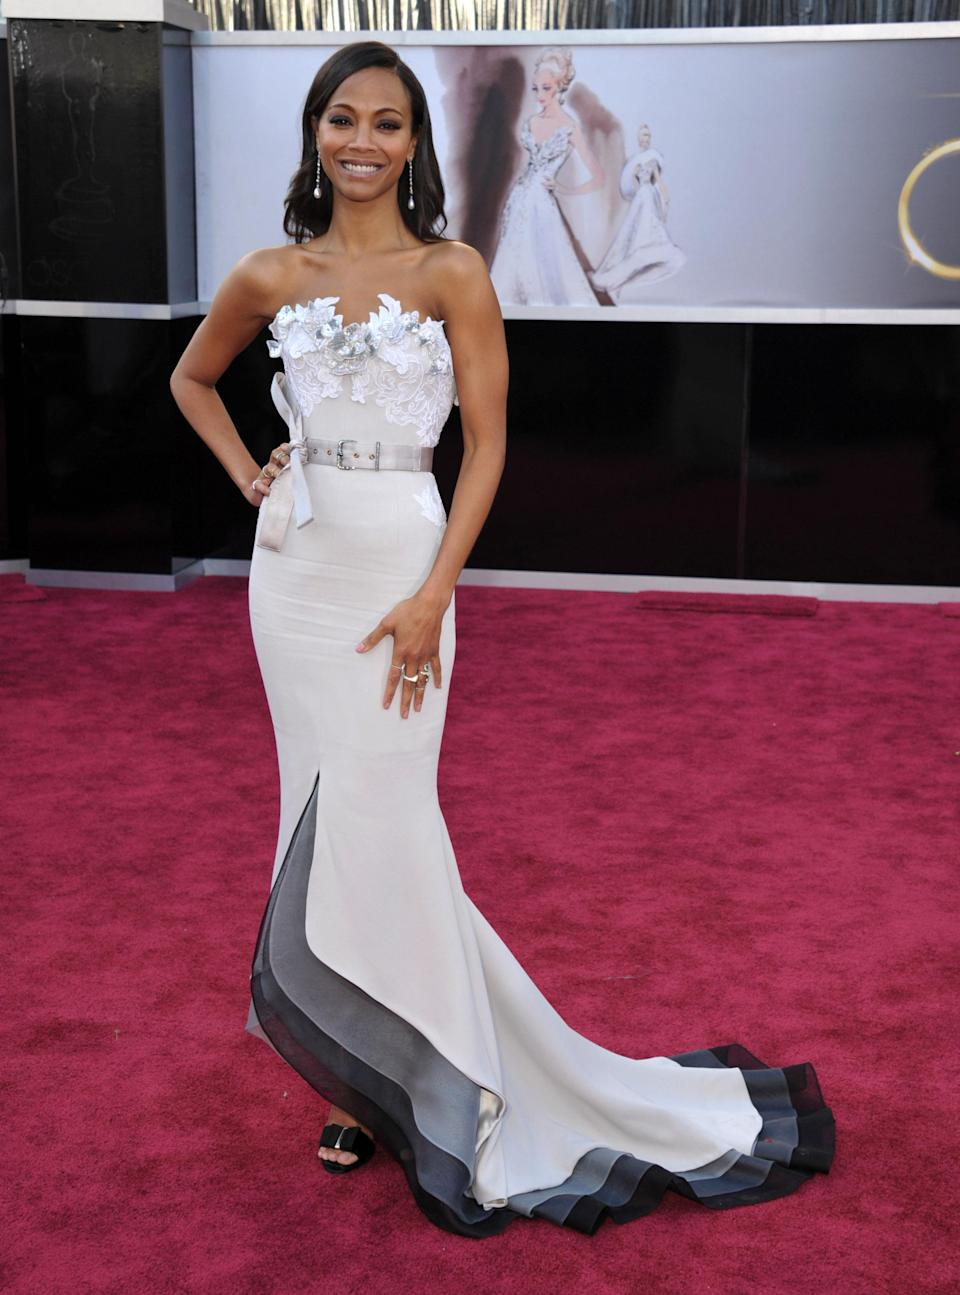 Worst: Zoe Saldana's Alexis Mable Couture gown has it all -- a belt, a bow, an embellished neckline, ombre-like layers -- and that's exactly the problem. It's too much. Saldana herself looked gorgeous, but the busy dress distracted from her beauty.